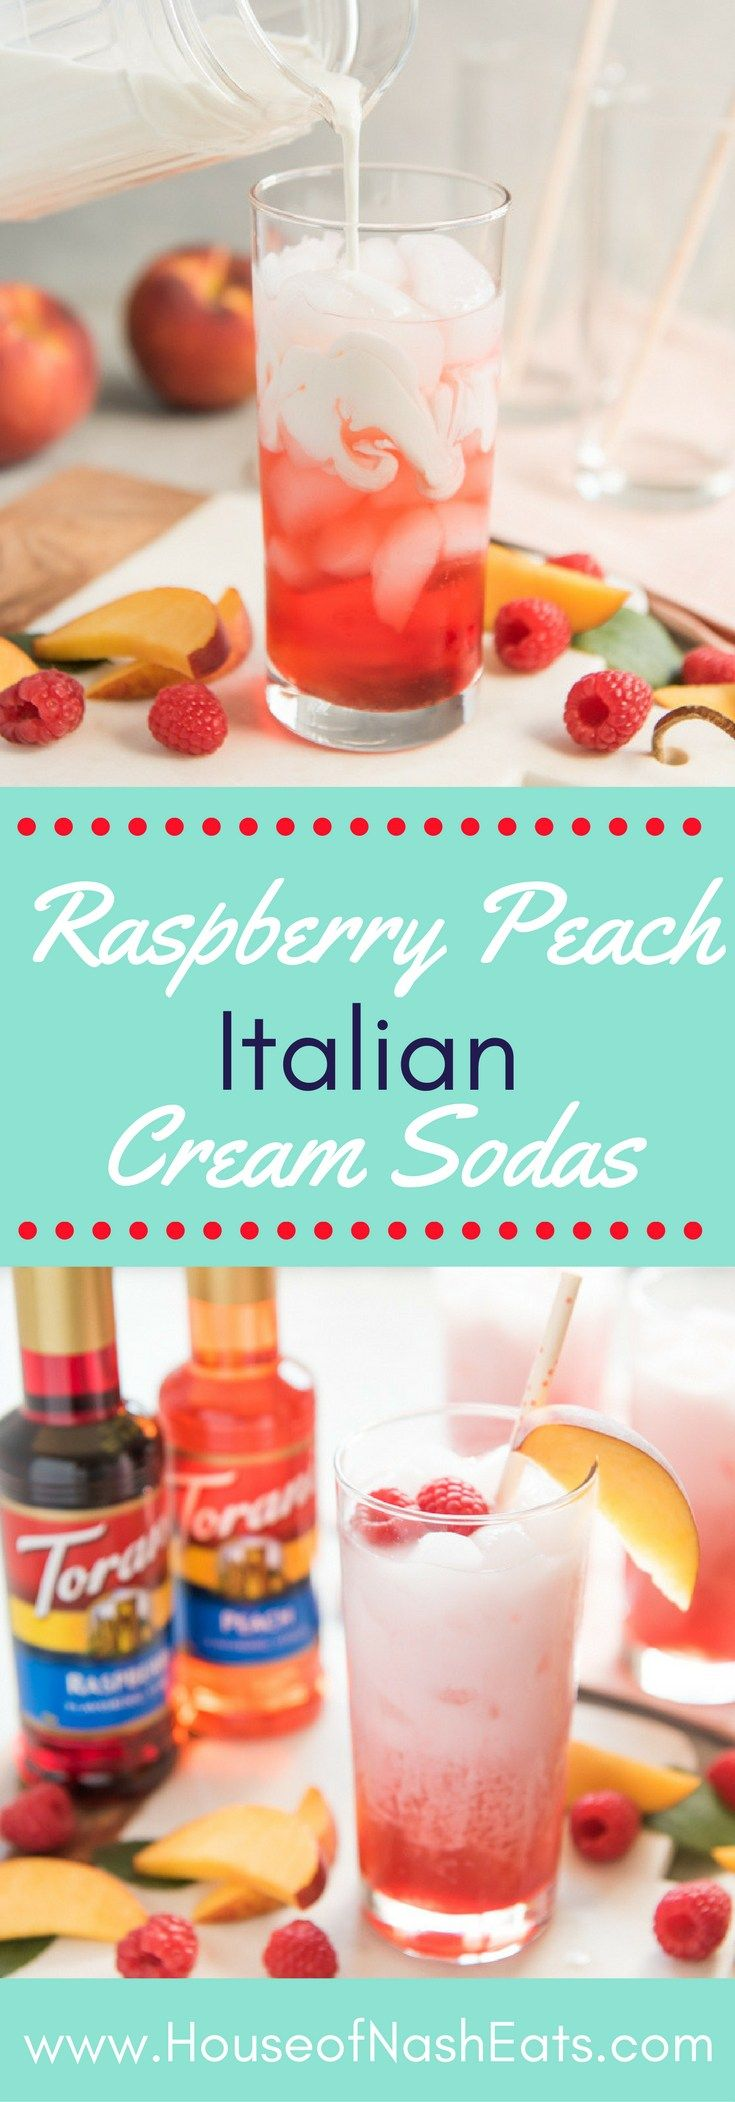 These easy and refreshing Raspberry Peach Italian Cream Sodas made with Torani syrups are the perfect non-alcoholic drink to serve all summer long! @ToraniFlavor @walmart #MyToraniSummer #ad